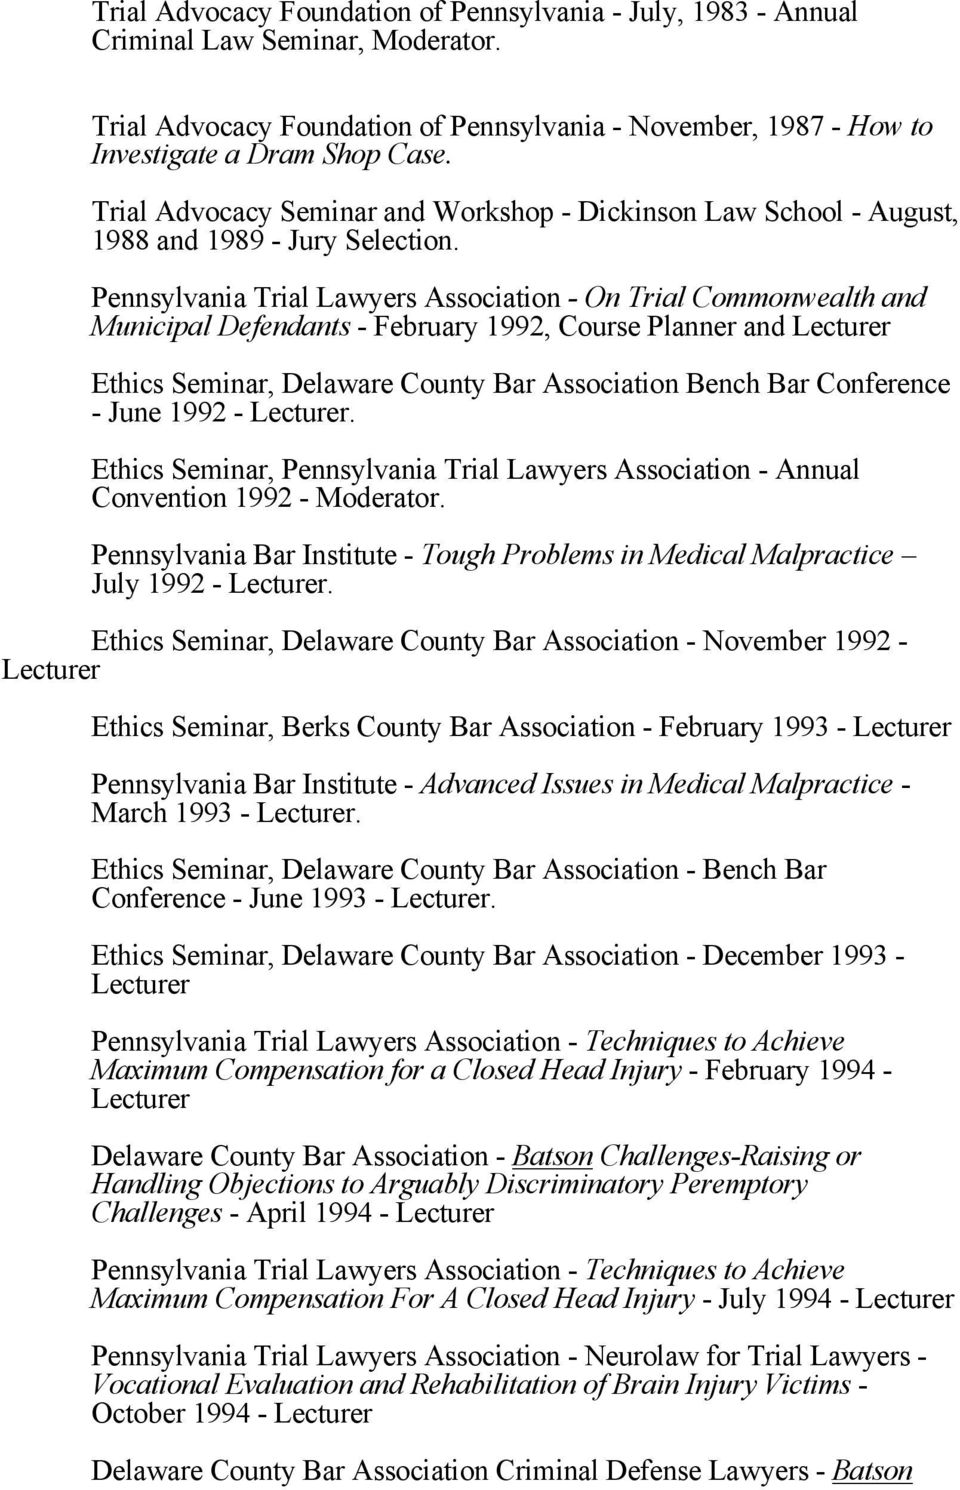 Pennsylvania Trial Lawyers Association - On Trial Commonwealth and Municipal Defendants - February 1992, Course Planner and Ethics Seminar, Delaware County Bar Association Bench Bar Conference - June